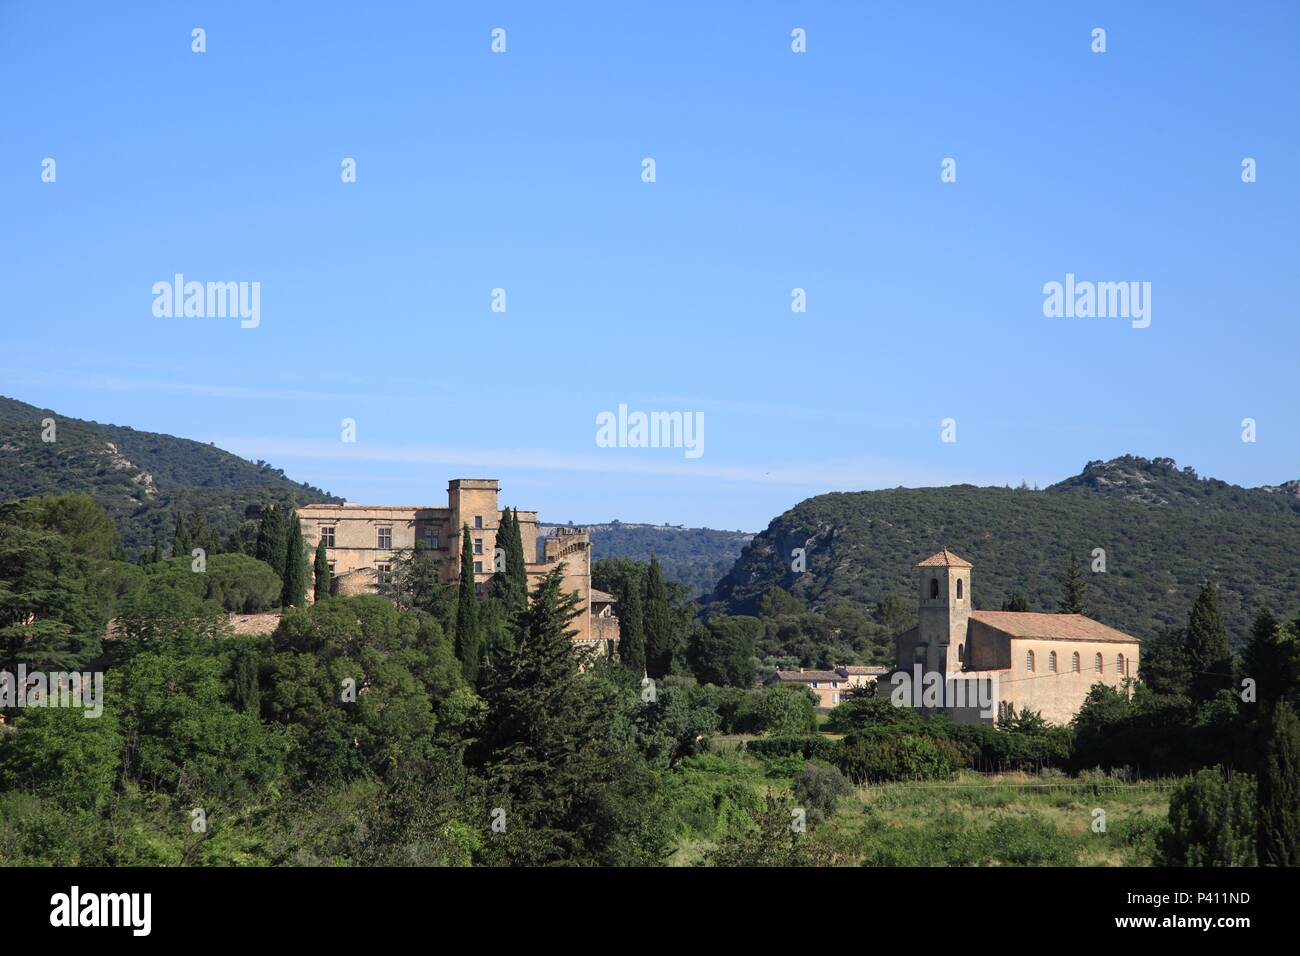 Chambre D'hotes Vaucluse Views Of Lourmarin Vaucluse France Including The Chateau